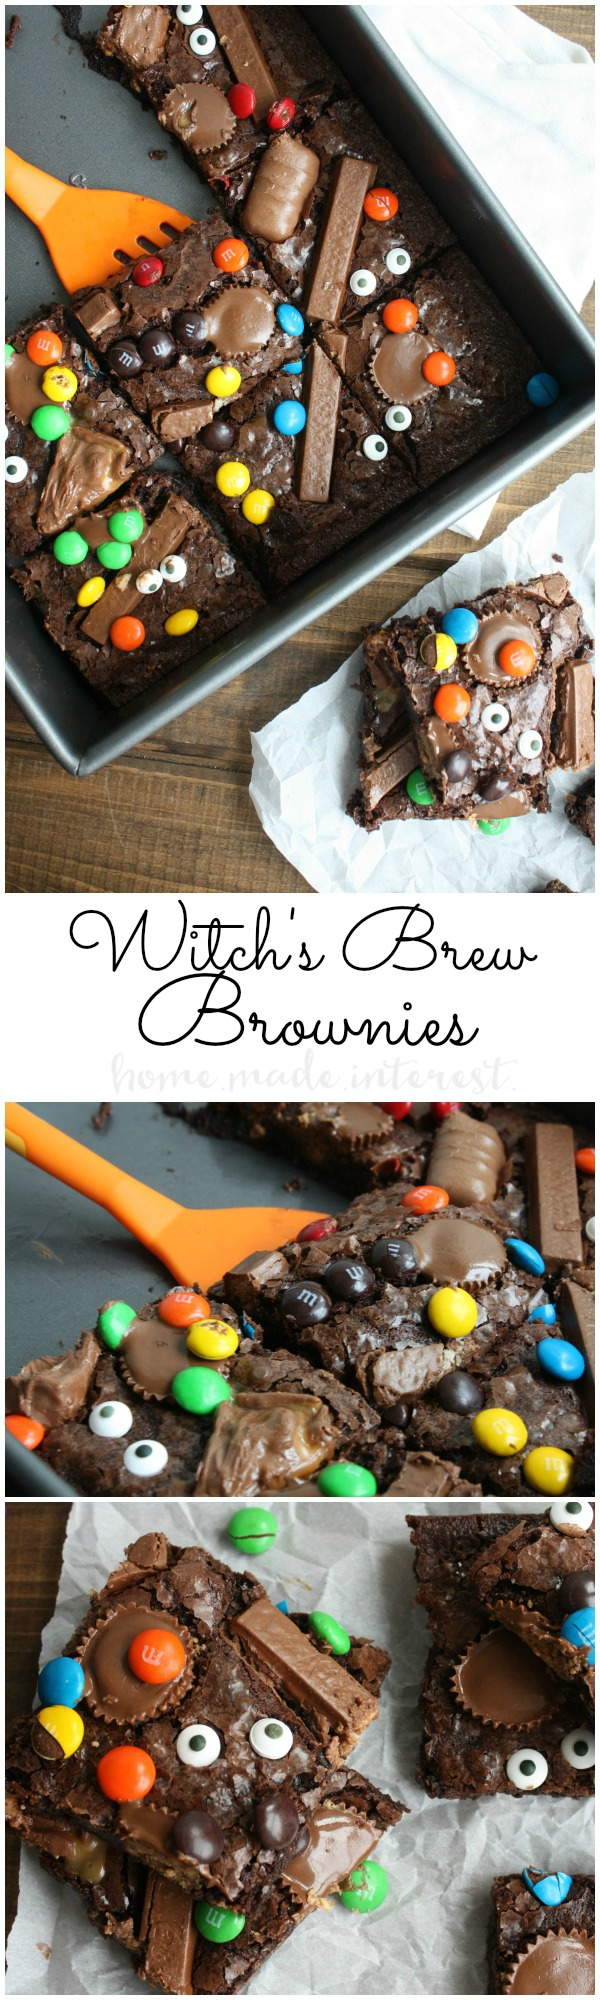 Witch's Brew Brownies | This ooey, gooey, chocolate brownie recipe is an easy Halloween dessert recipe for using up all of that leftover Halloween candy. Make Halloween fun this year with this easy Halloween dessert idea. It makes a great Halloween food idea for Halloween parties or just a fun Halloween dessert for your kids!